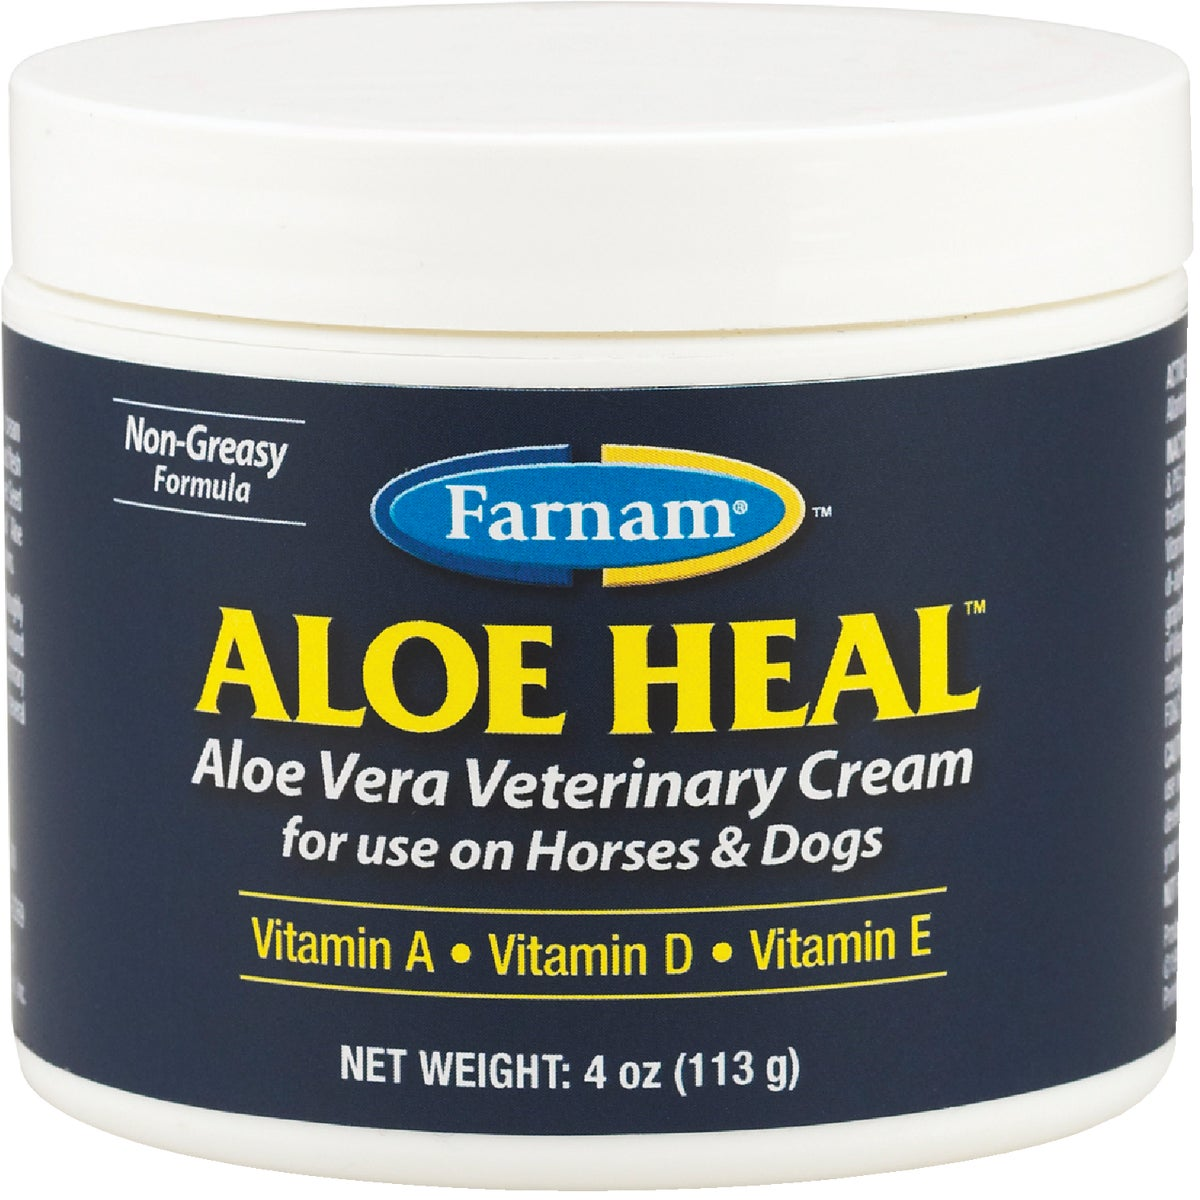 4OZ ALOE HEAL CREAM